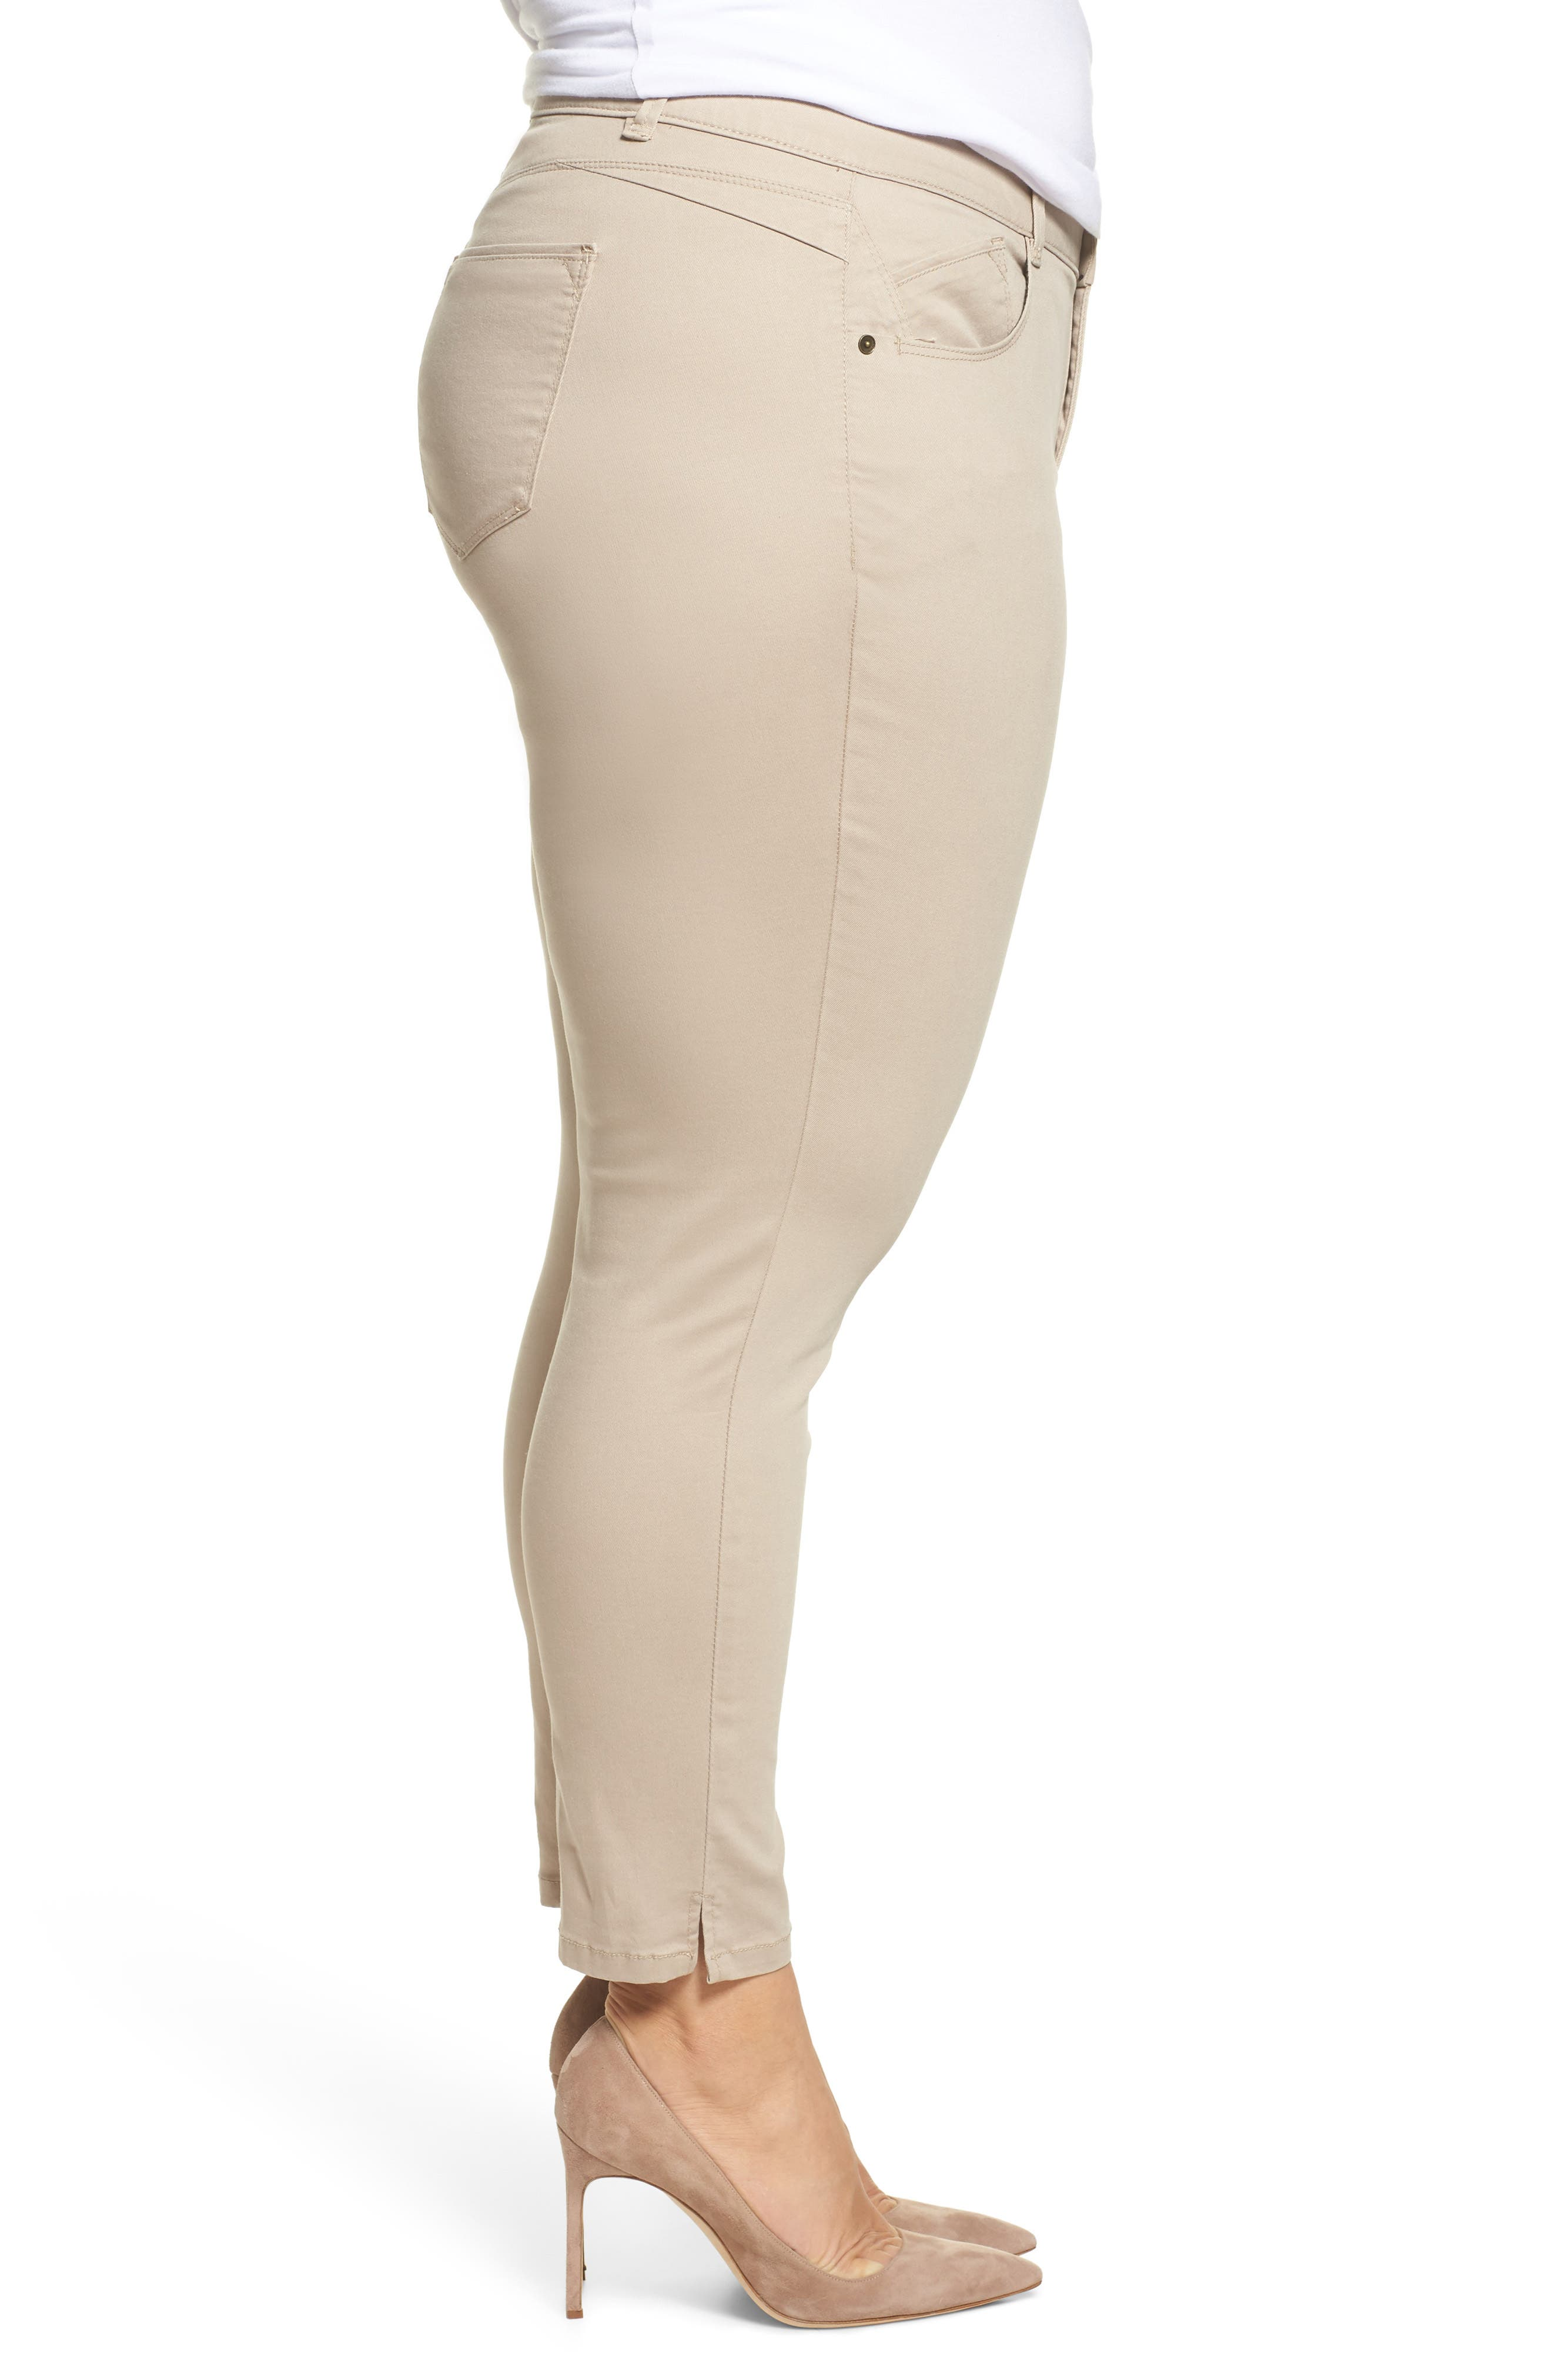 Ab-solution Ankle Pants,                             Alternate thumbnail 3, color,                             Flax